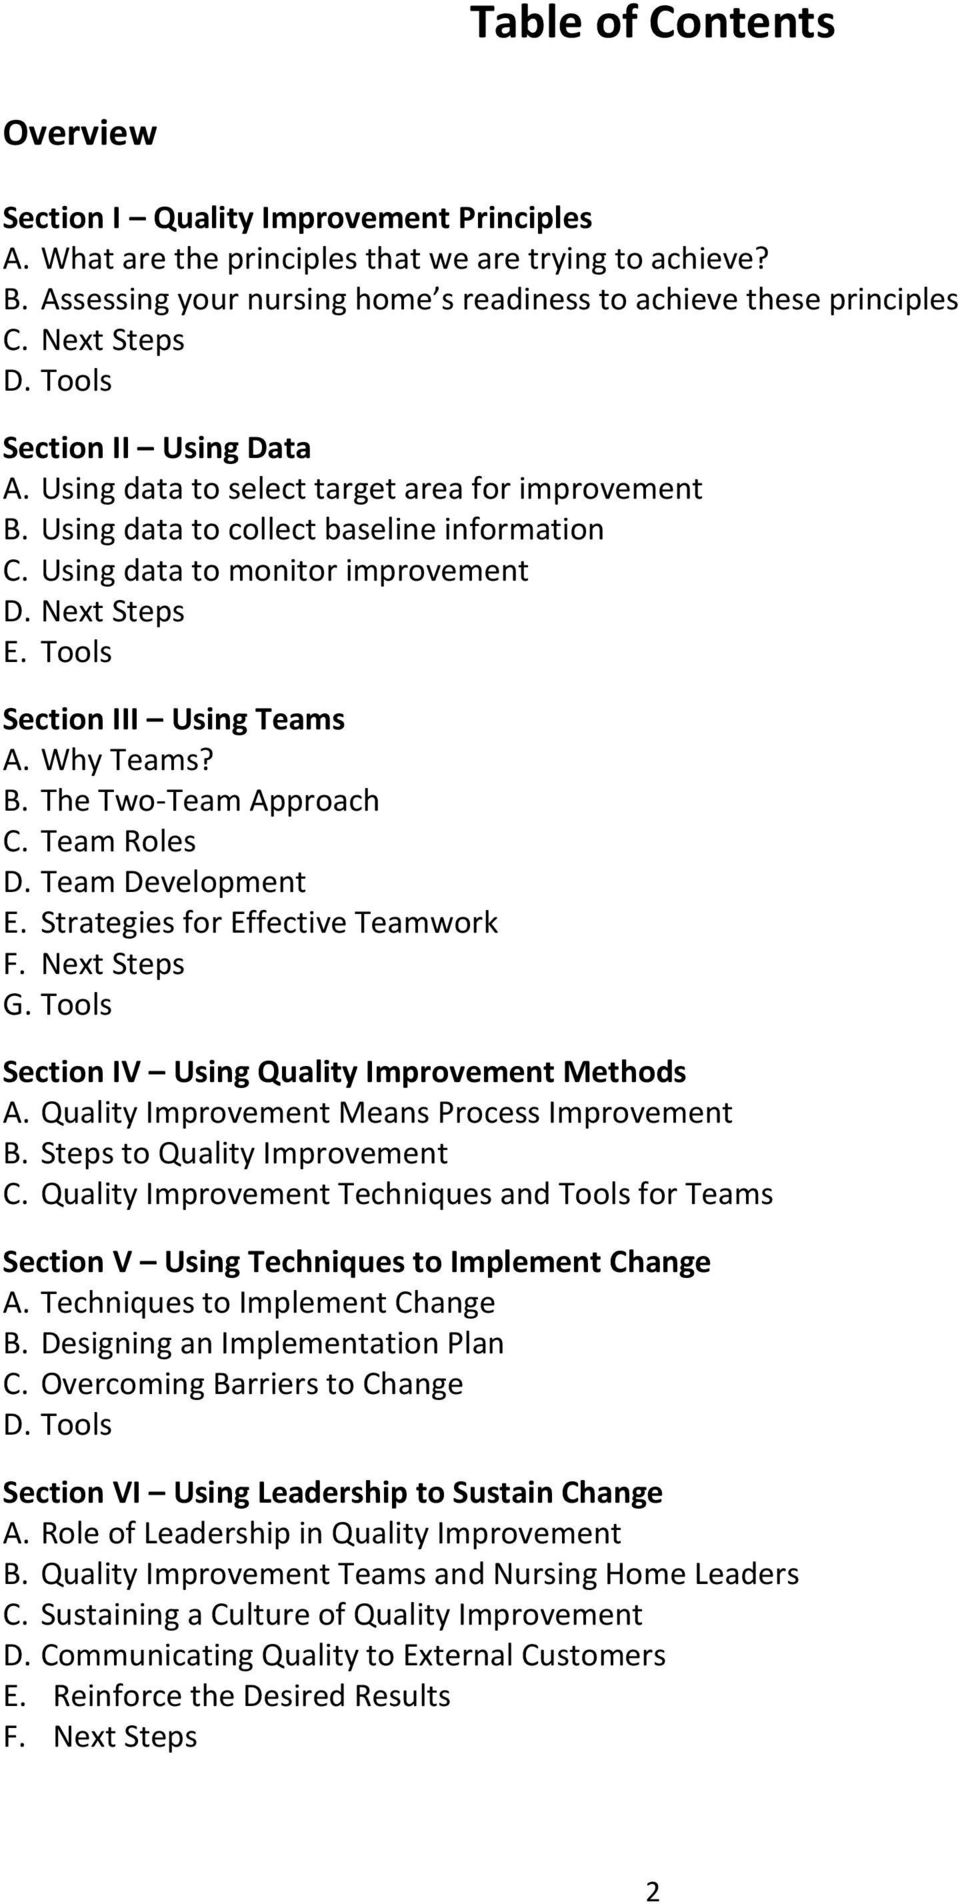 Tools Section III Using Teams A. Why Teams? B. The Two-Team Approach C. Team Roles D. Team Development E. Strategies for Effective Teamwork F. Next Steps G.